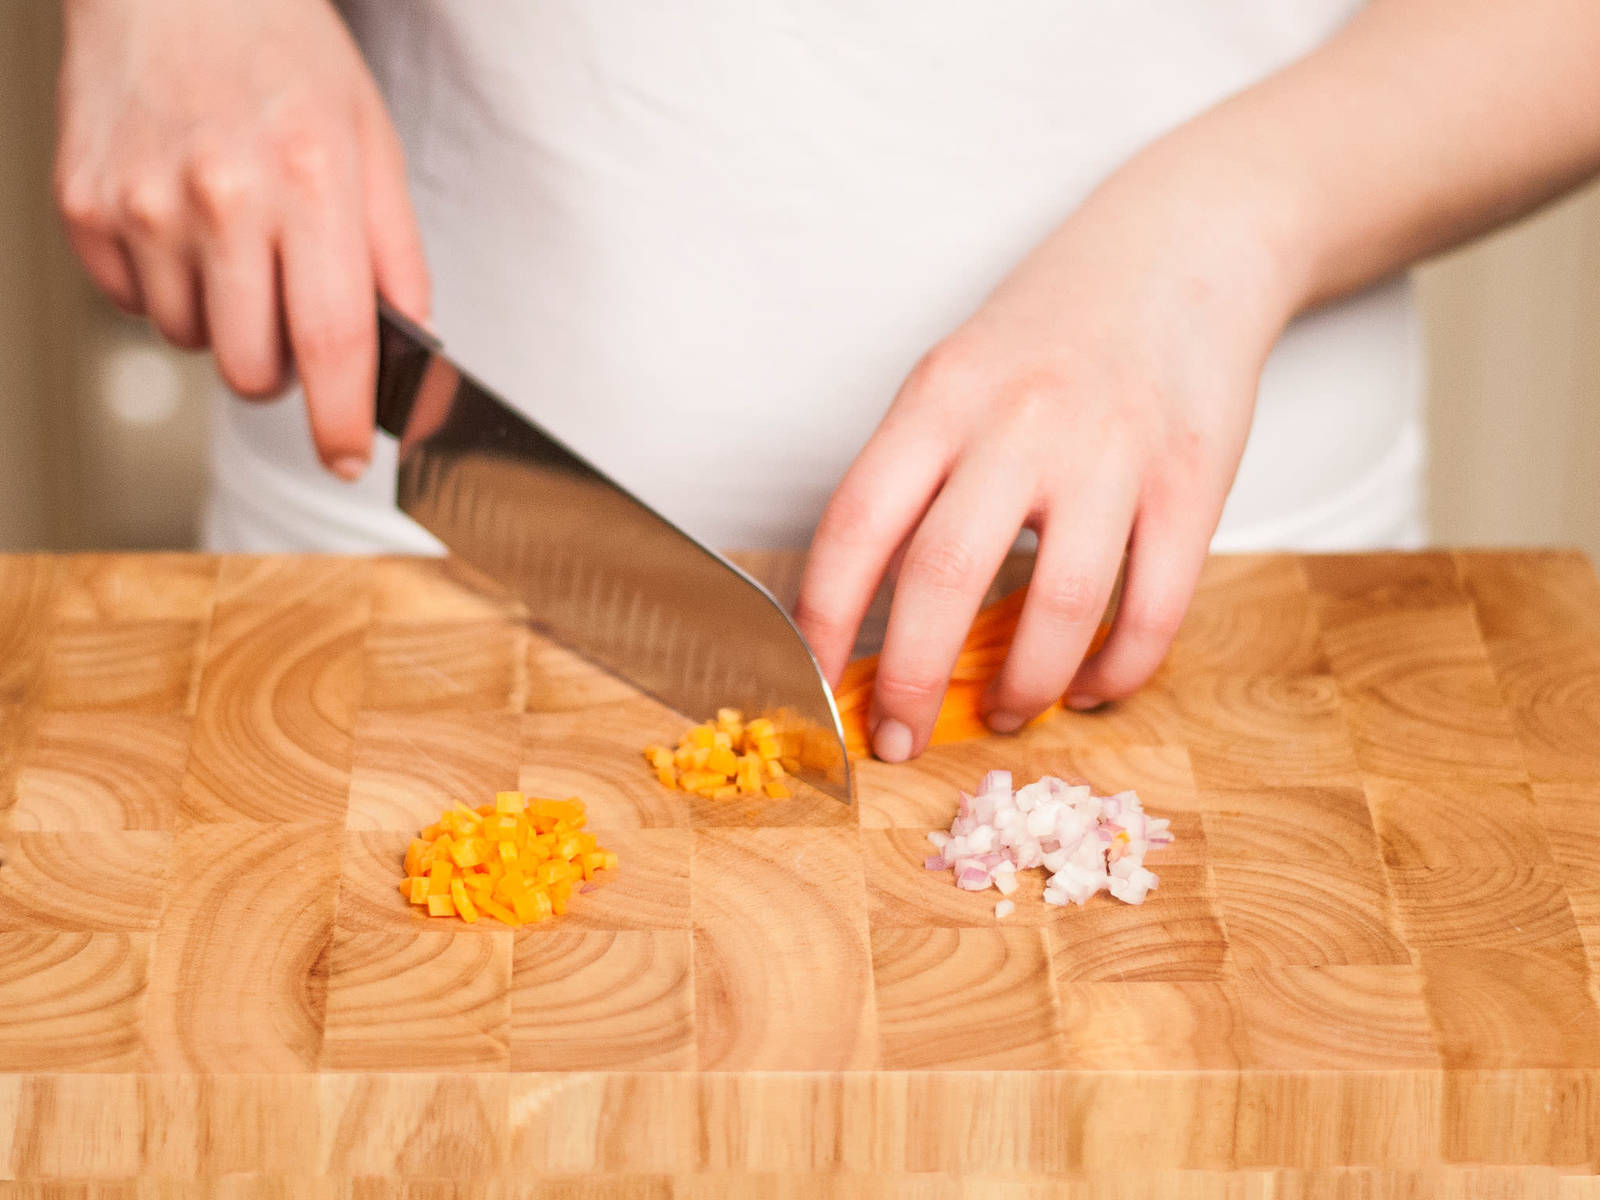 Finely chop garlic. Peel and dice onion and carrots.